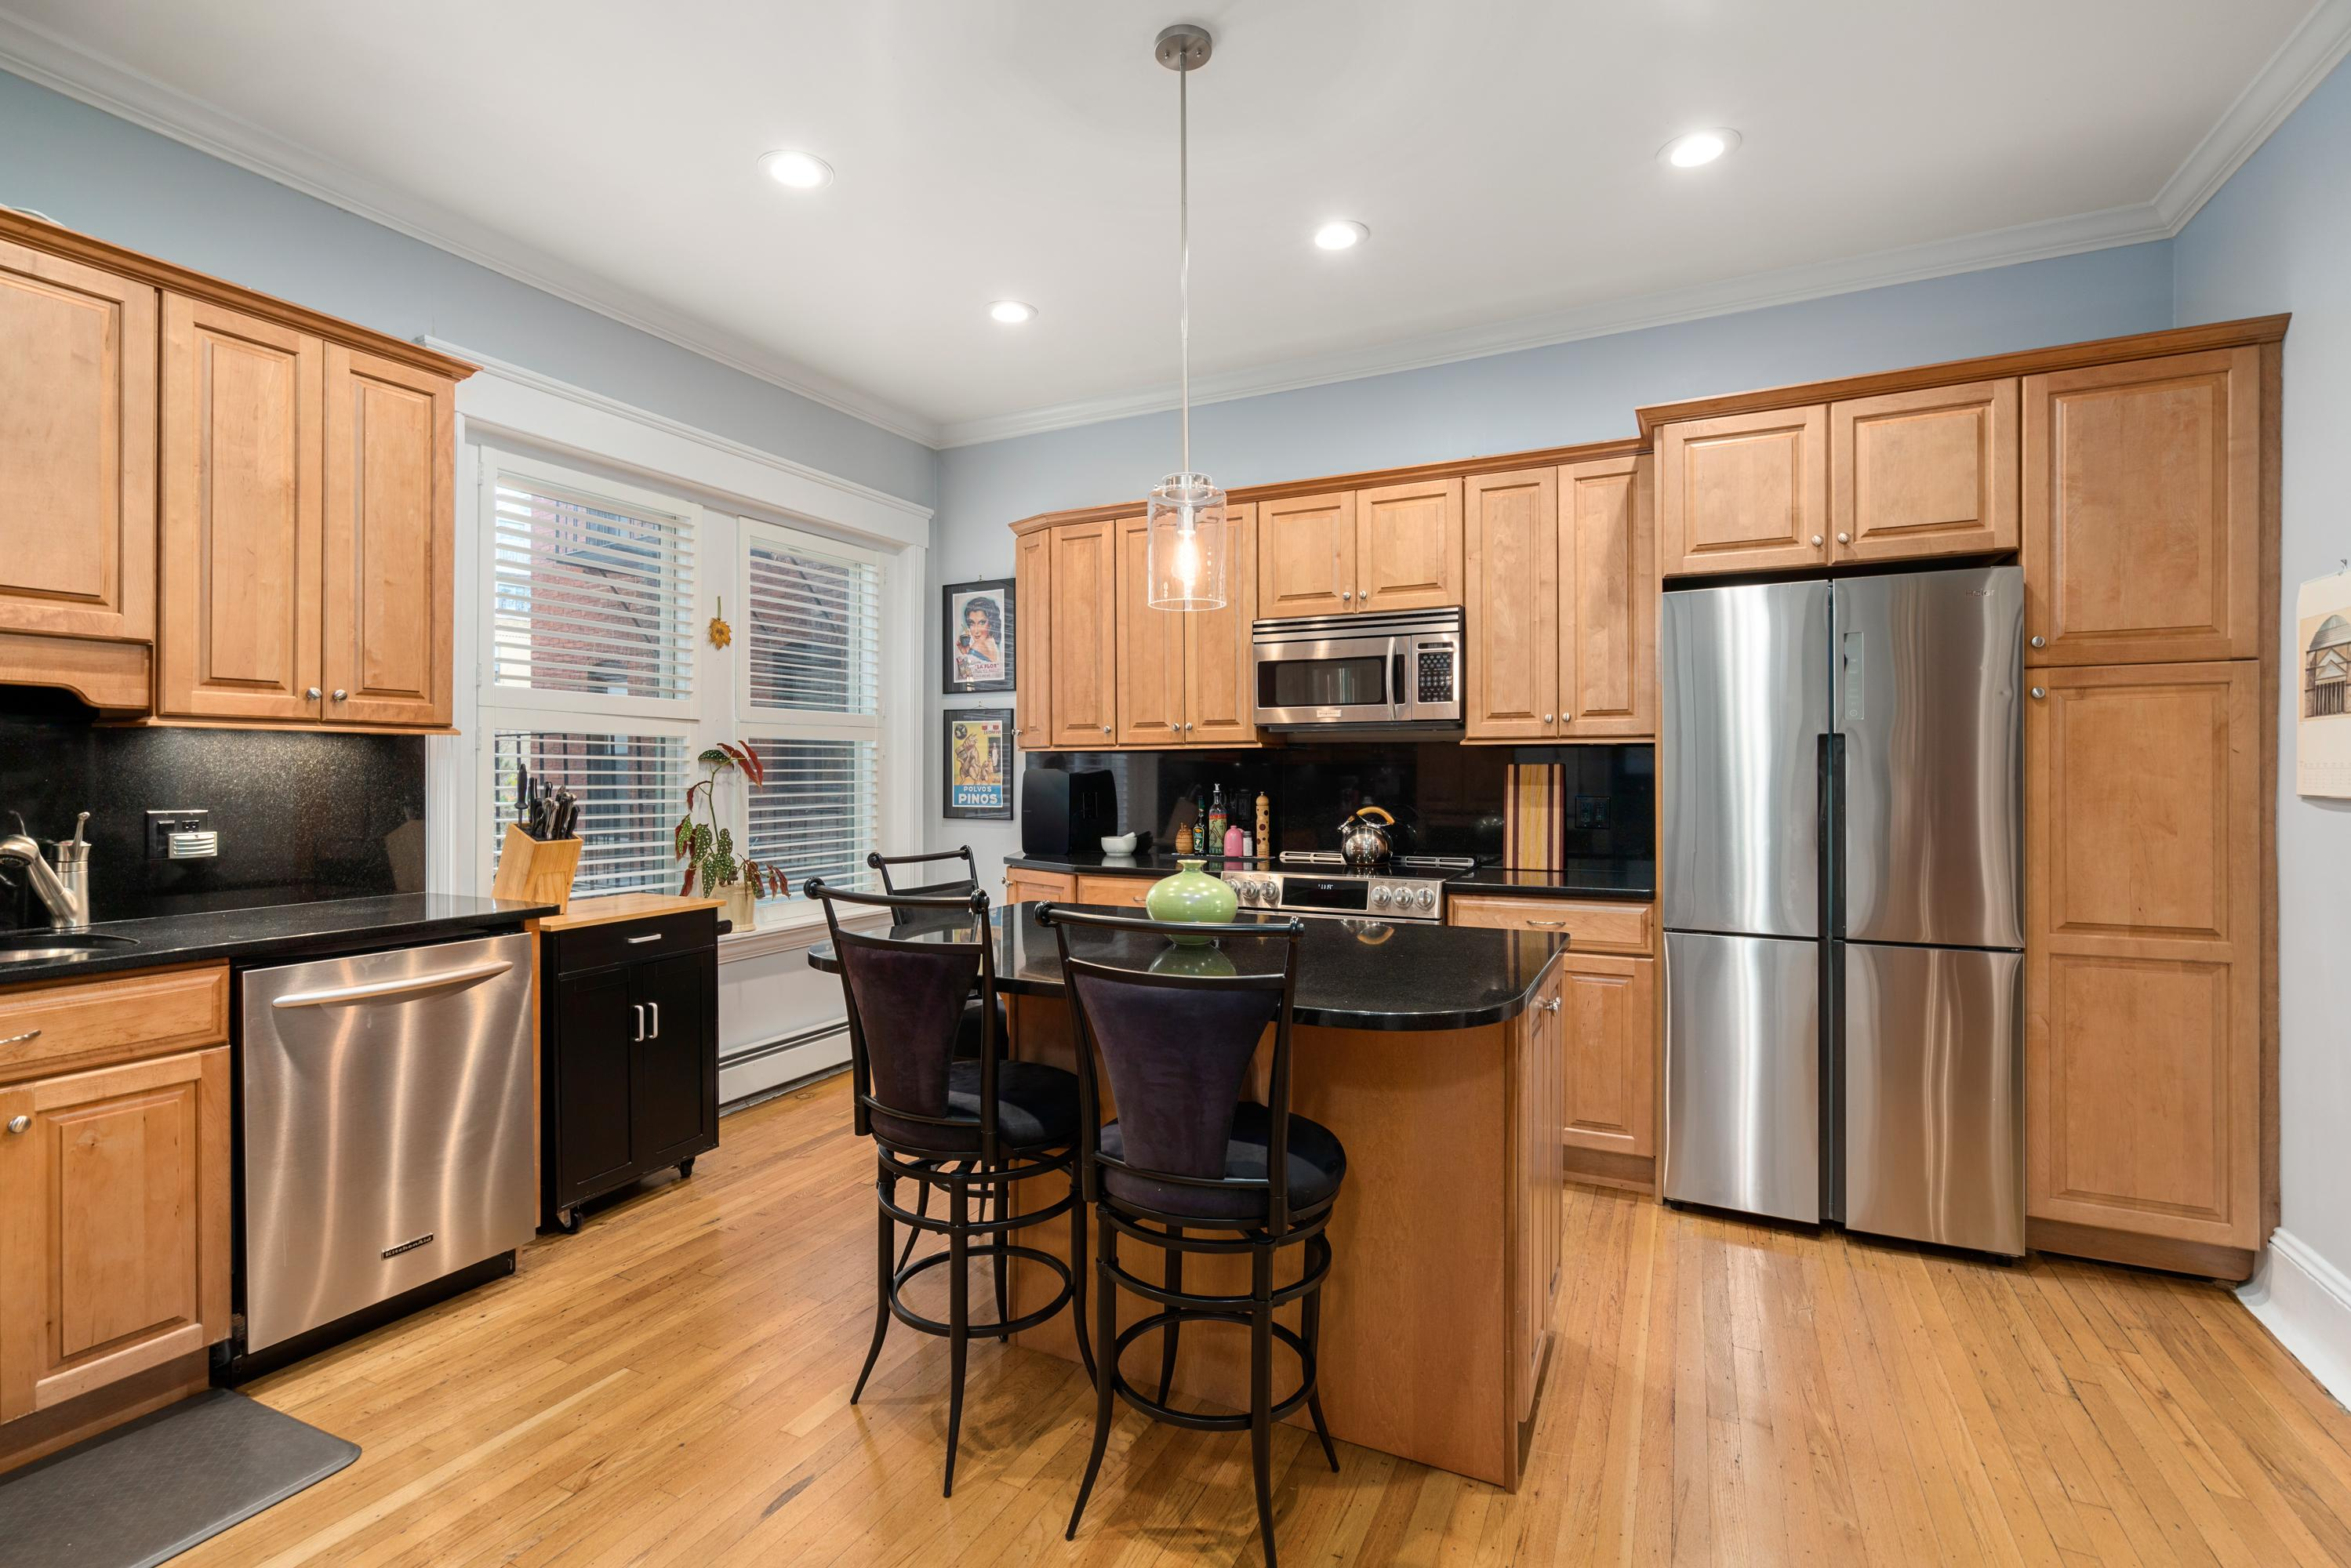 Property Image for 426 Hanover Street #2